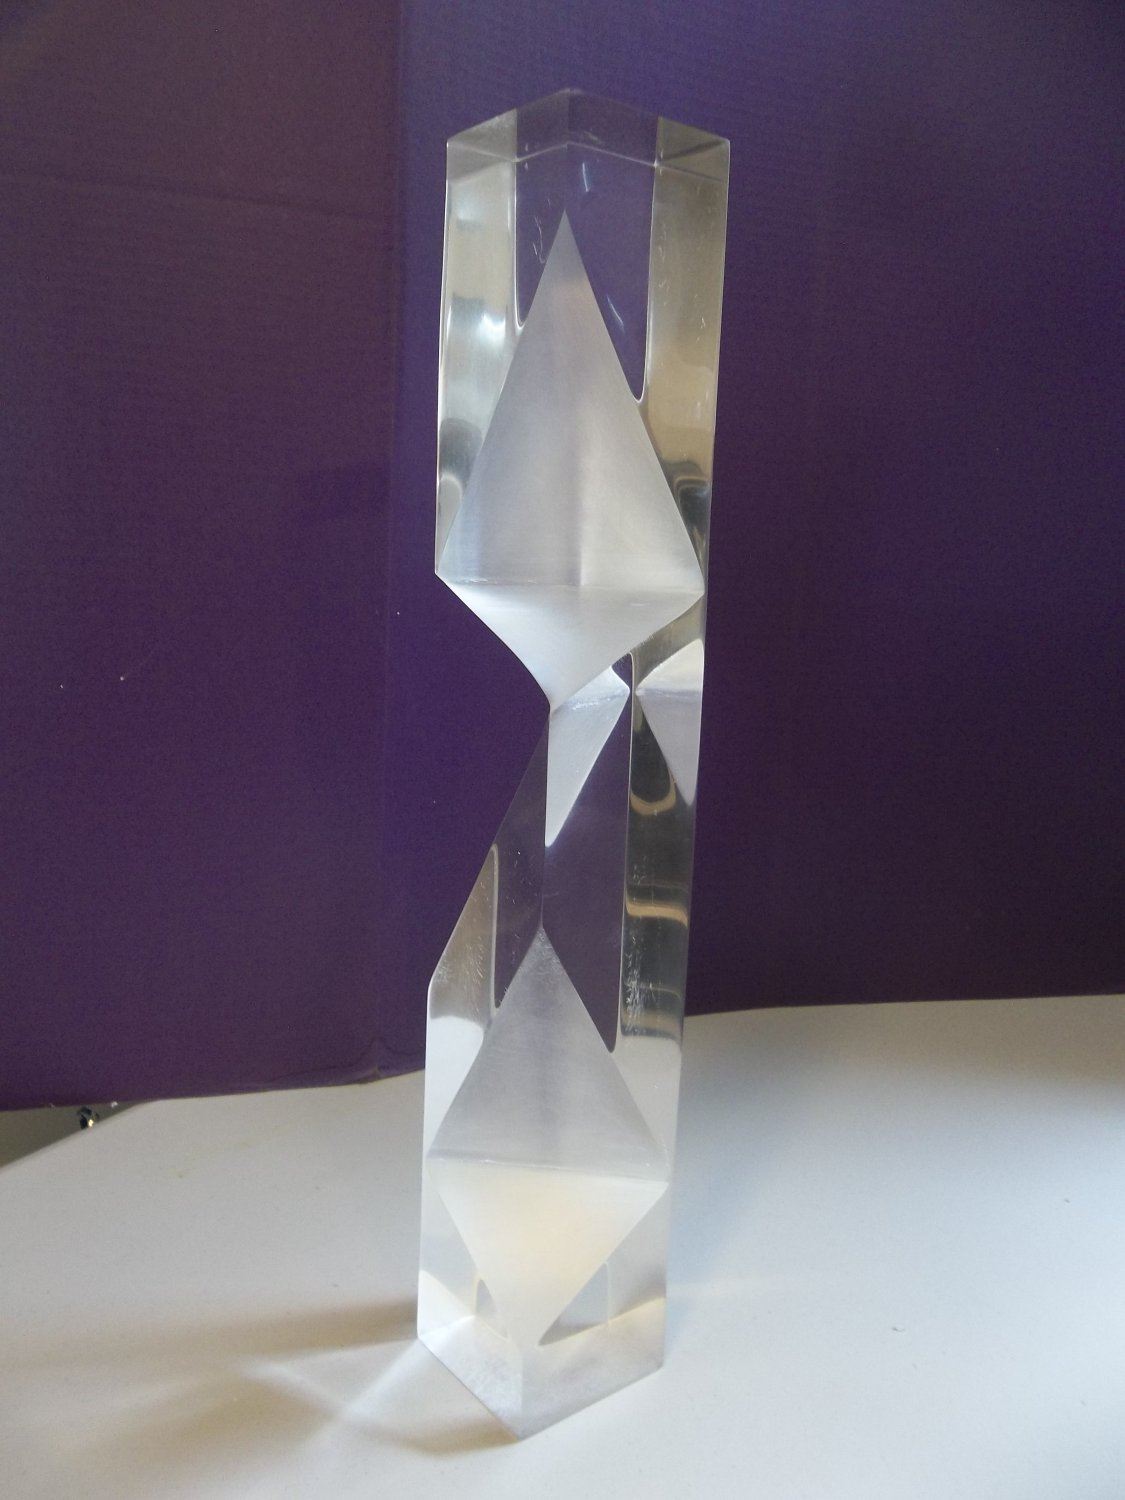 VTG Faceted Modern Lucite Acrylic Prismatic Sculpture Tower Alessio Tasca ? 2186